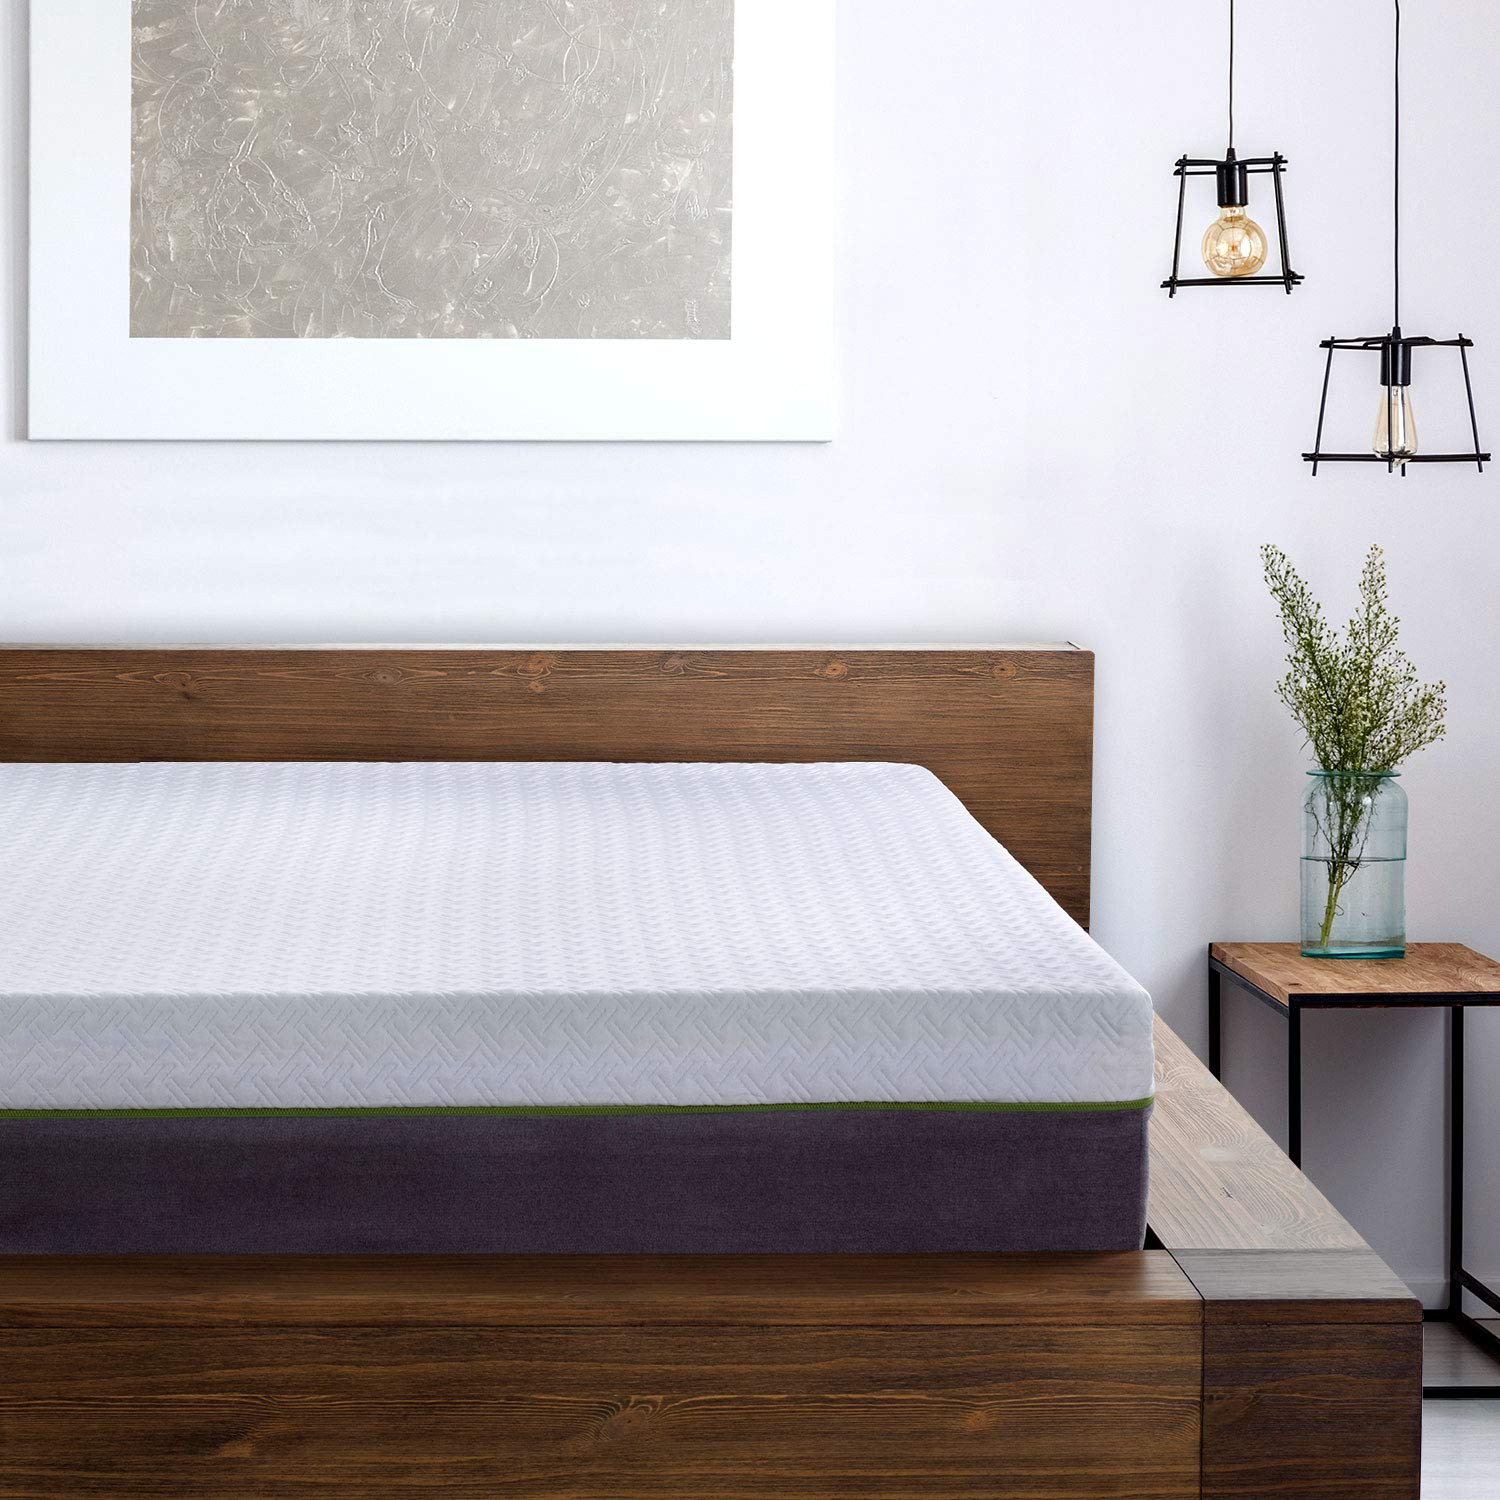 Furinno Angeland 8-Inch Bamboo Charcoal Infused Memory Foam Mattress, Queen,